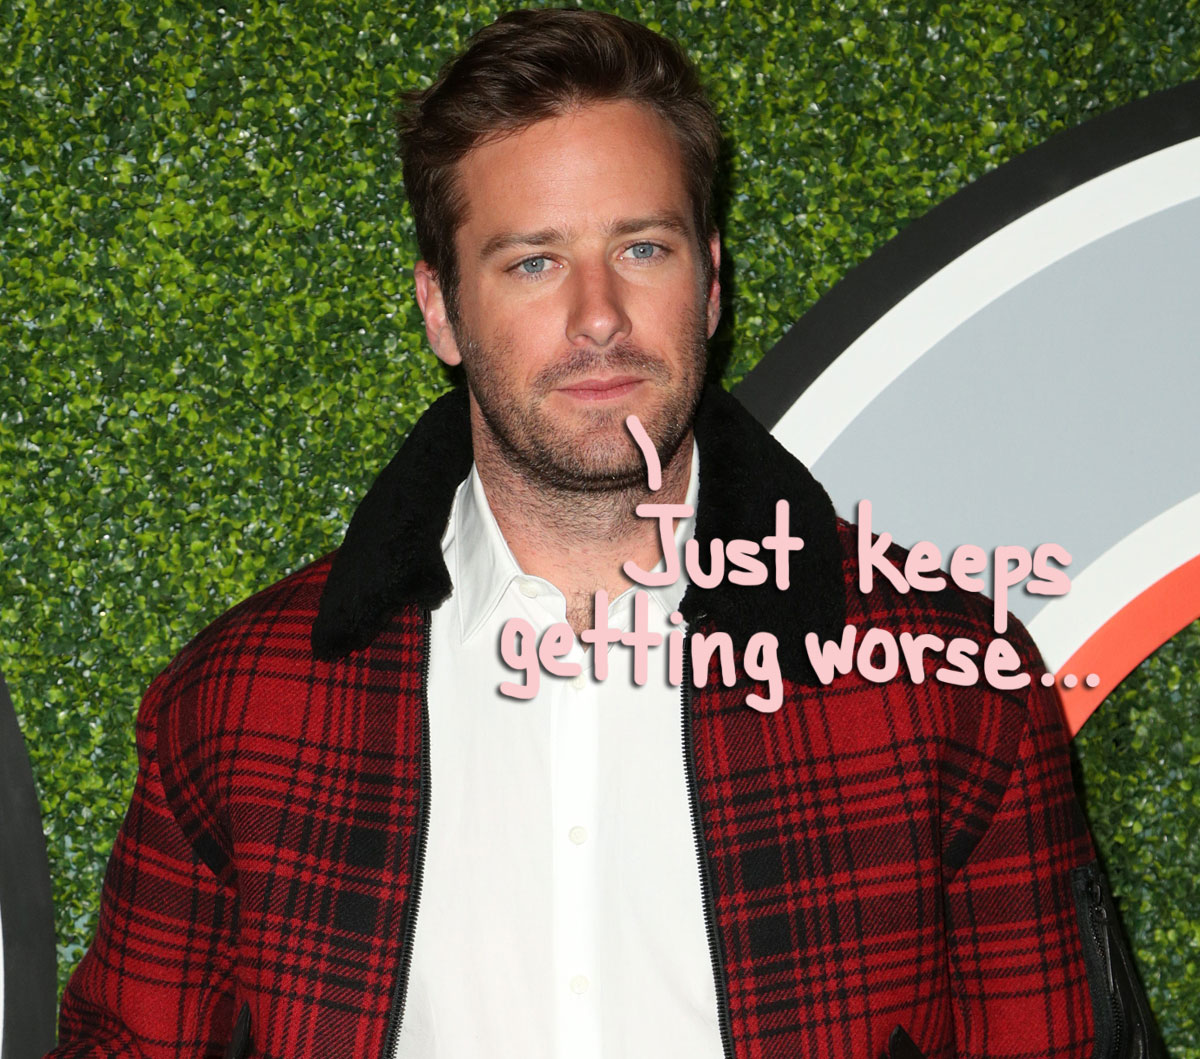 Armie Hammer Confirms THAT Finsta Account & Apologizes For Referring To Lingerie-Clad Woman In Video As 'Miss Cayman'